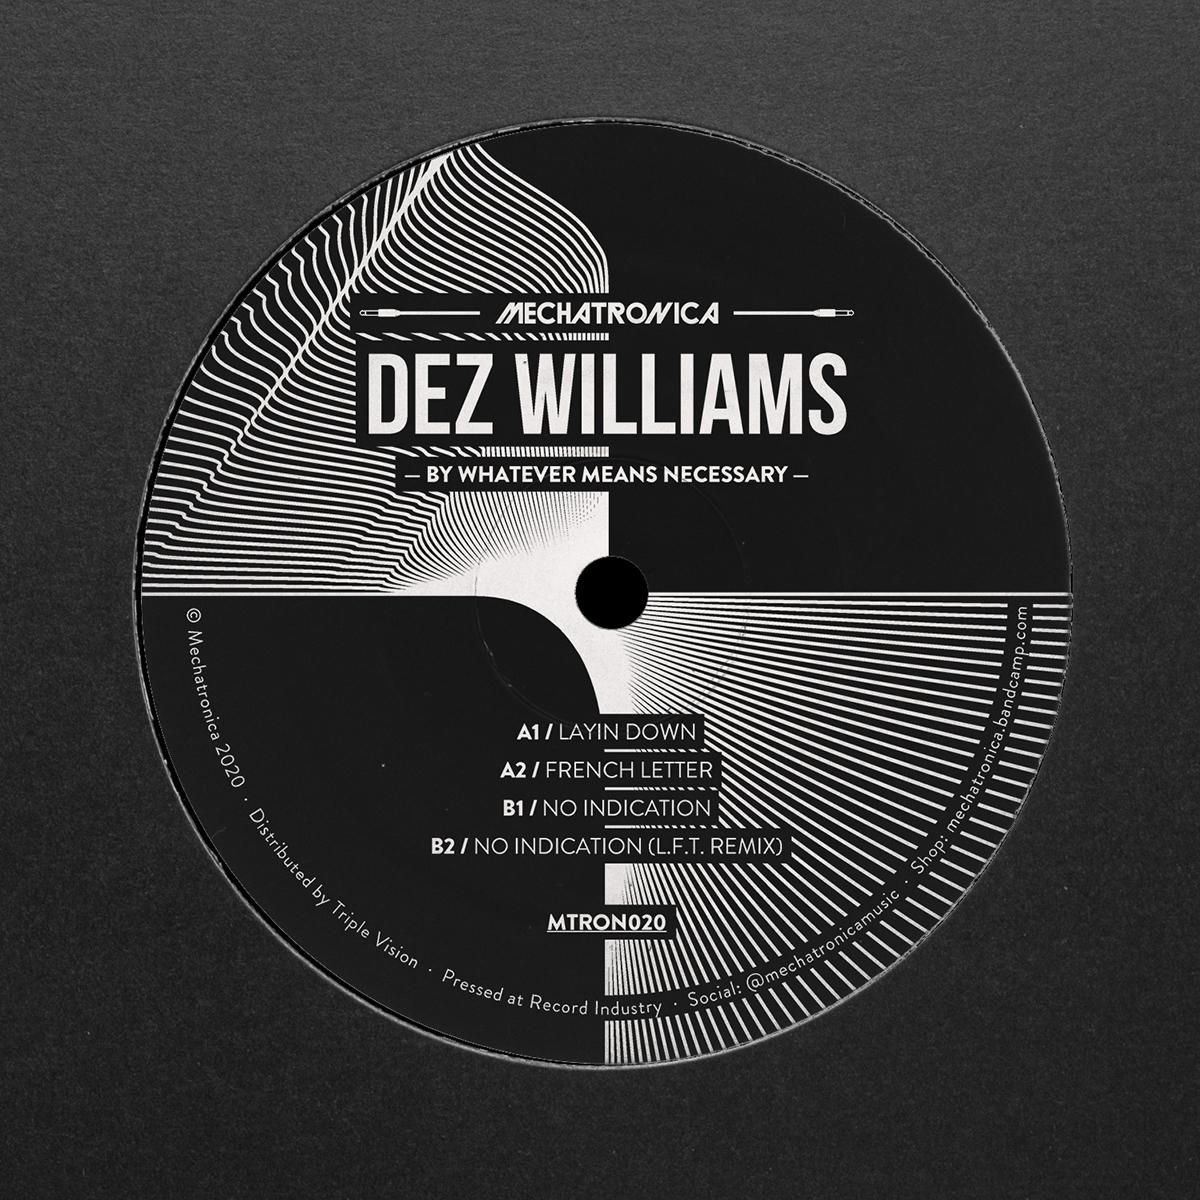 Dez Williams  - By Whatever Means Necessary L.F.T remix